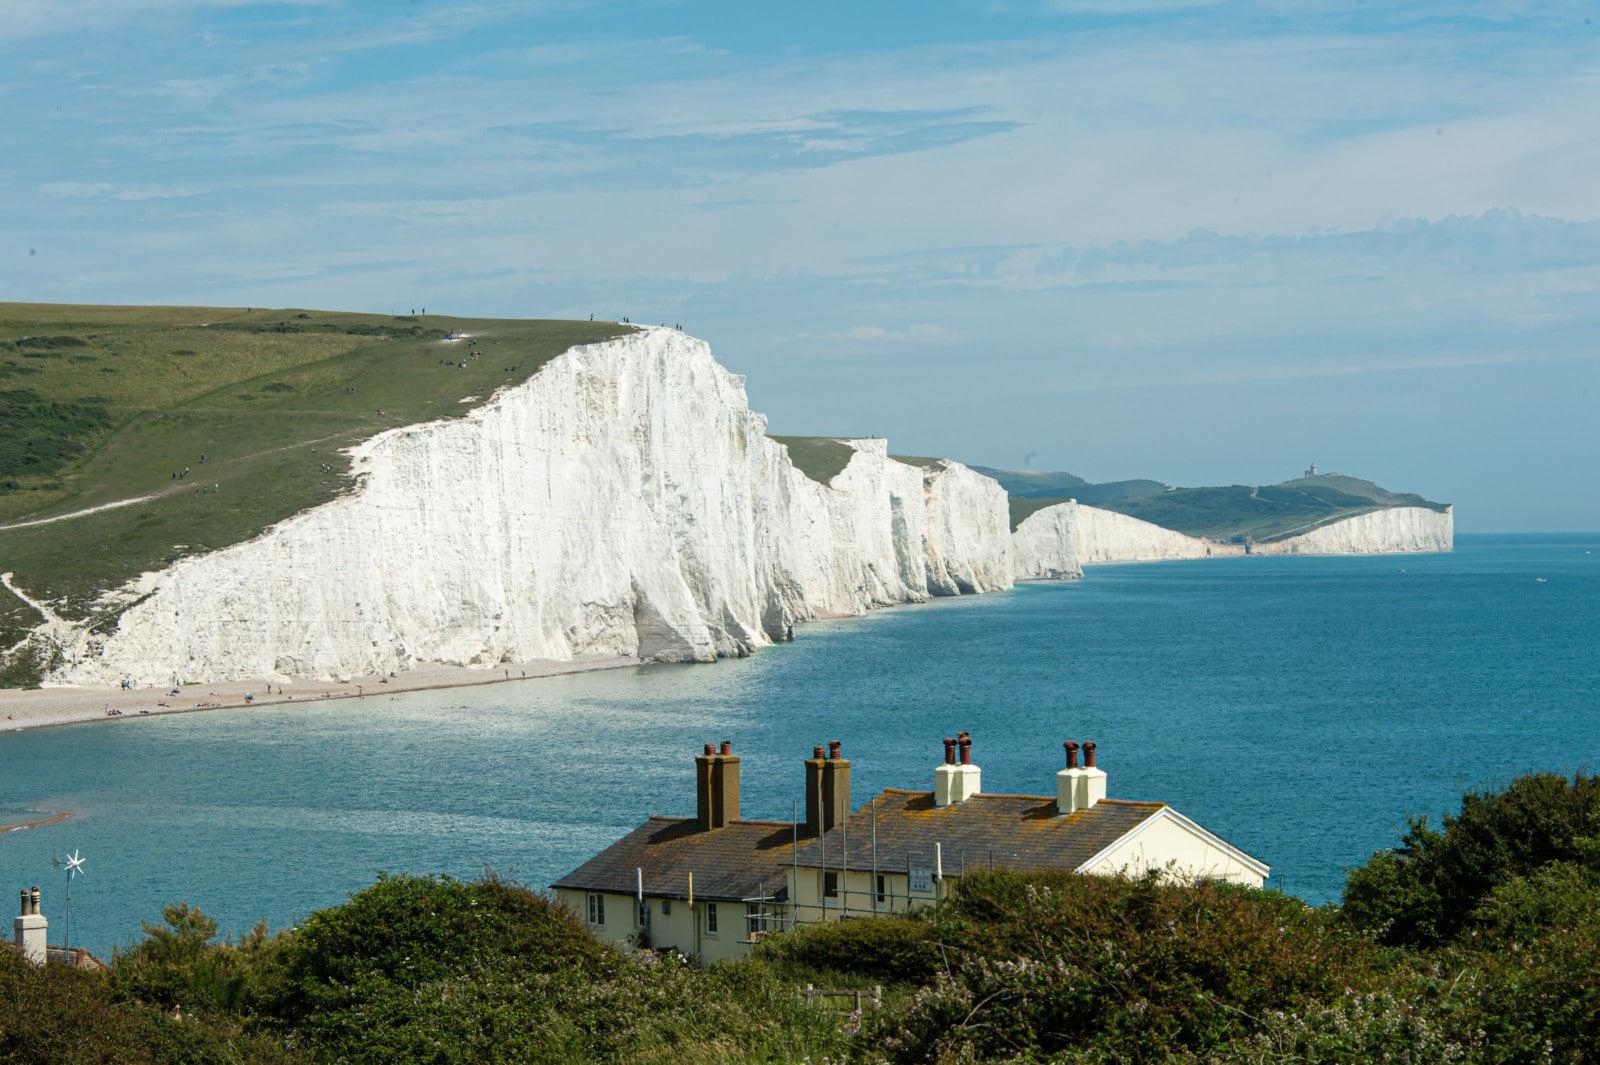 white-cliffs-england-london-freelance-photographer-richard-isaac-3200